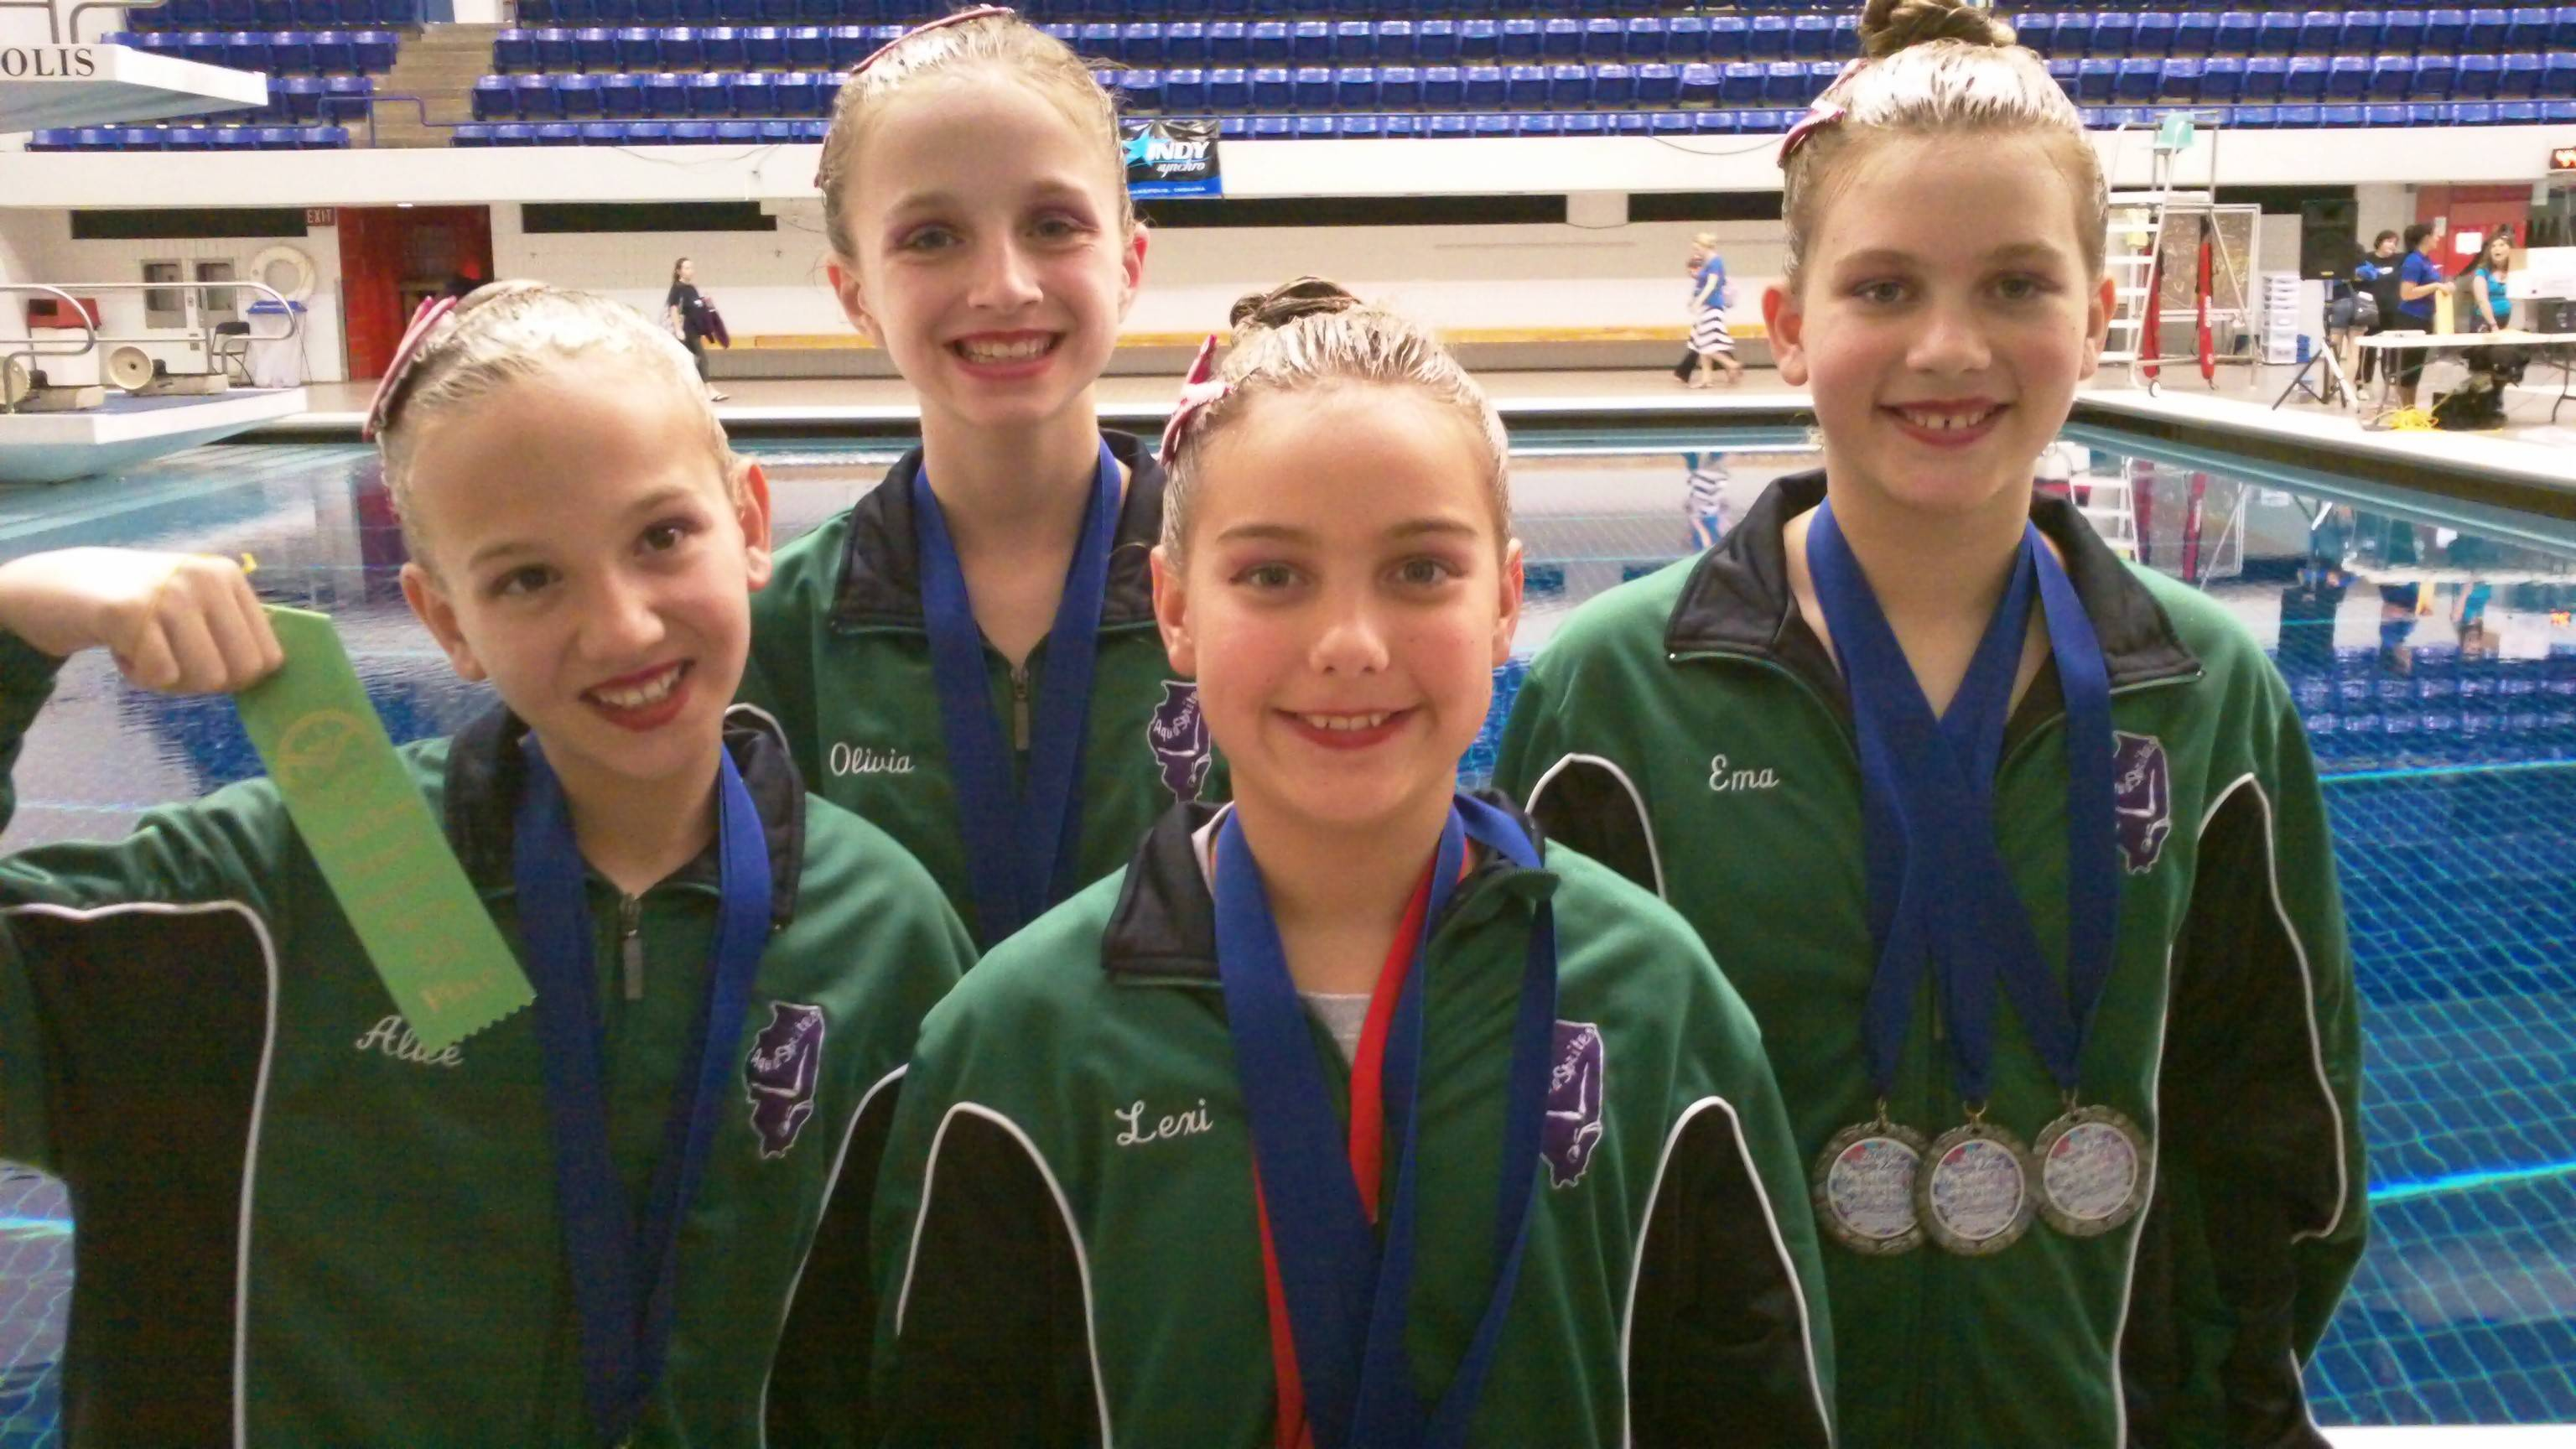 The AquaSprites 11-12 Team shows off their medals after receiving them at the regional championship in Indianapolis. Pictured, from left, are Alice Duska, Olivia Herman, Alexandra Dorula and Ema Glavanovic.